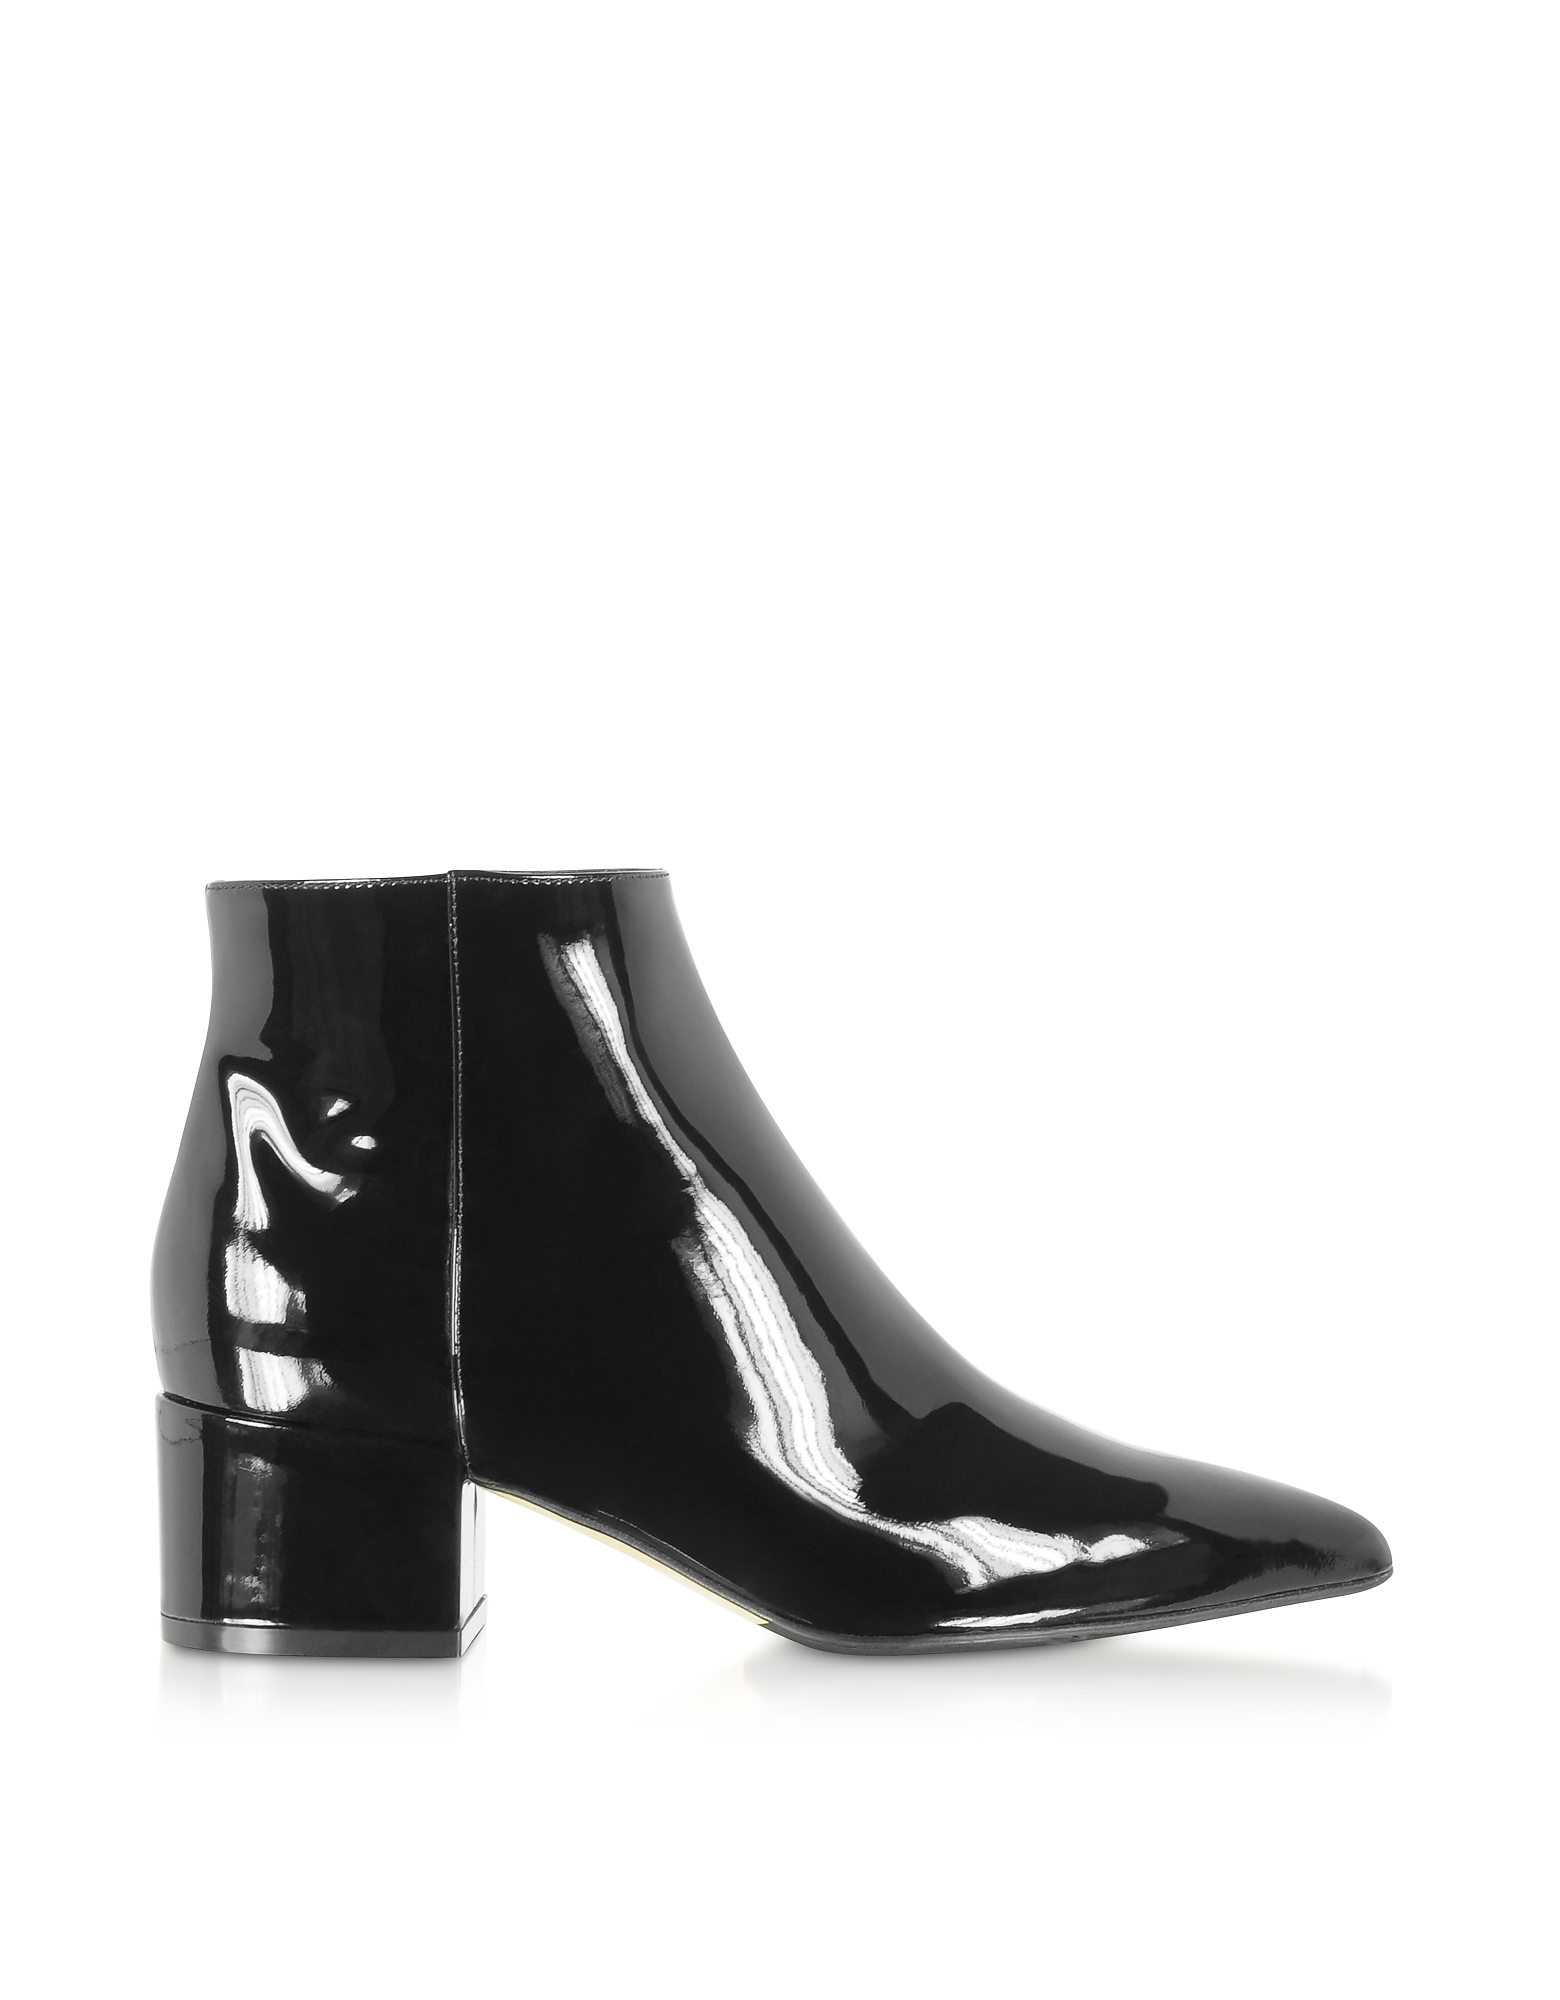 Soft Patent Leather Black Boots